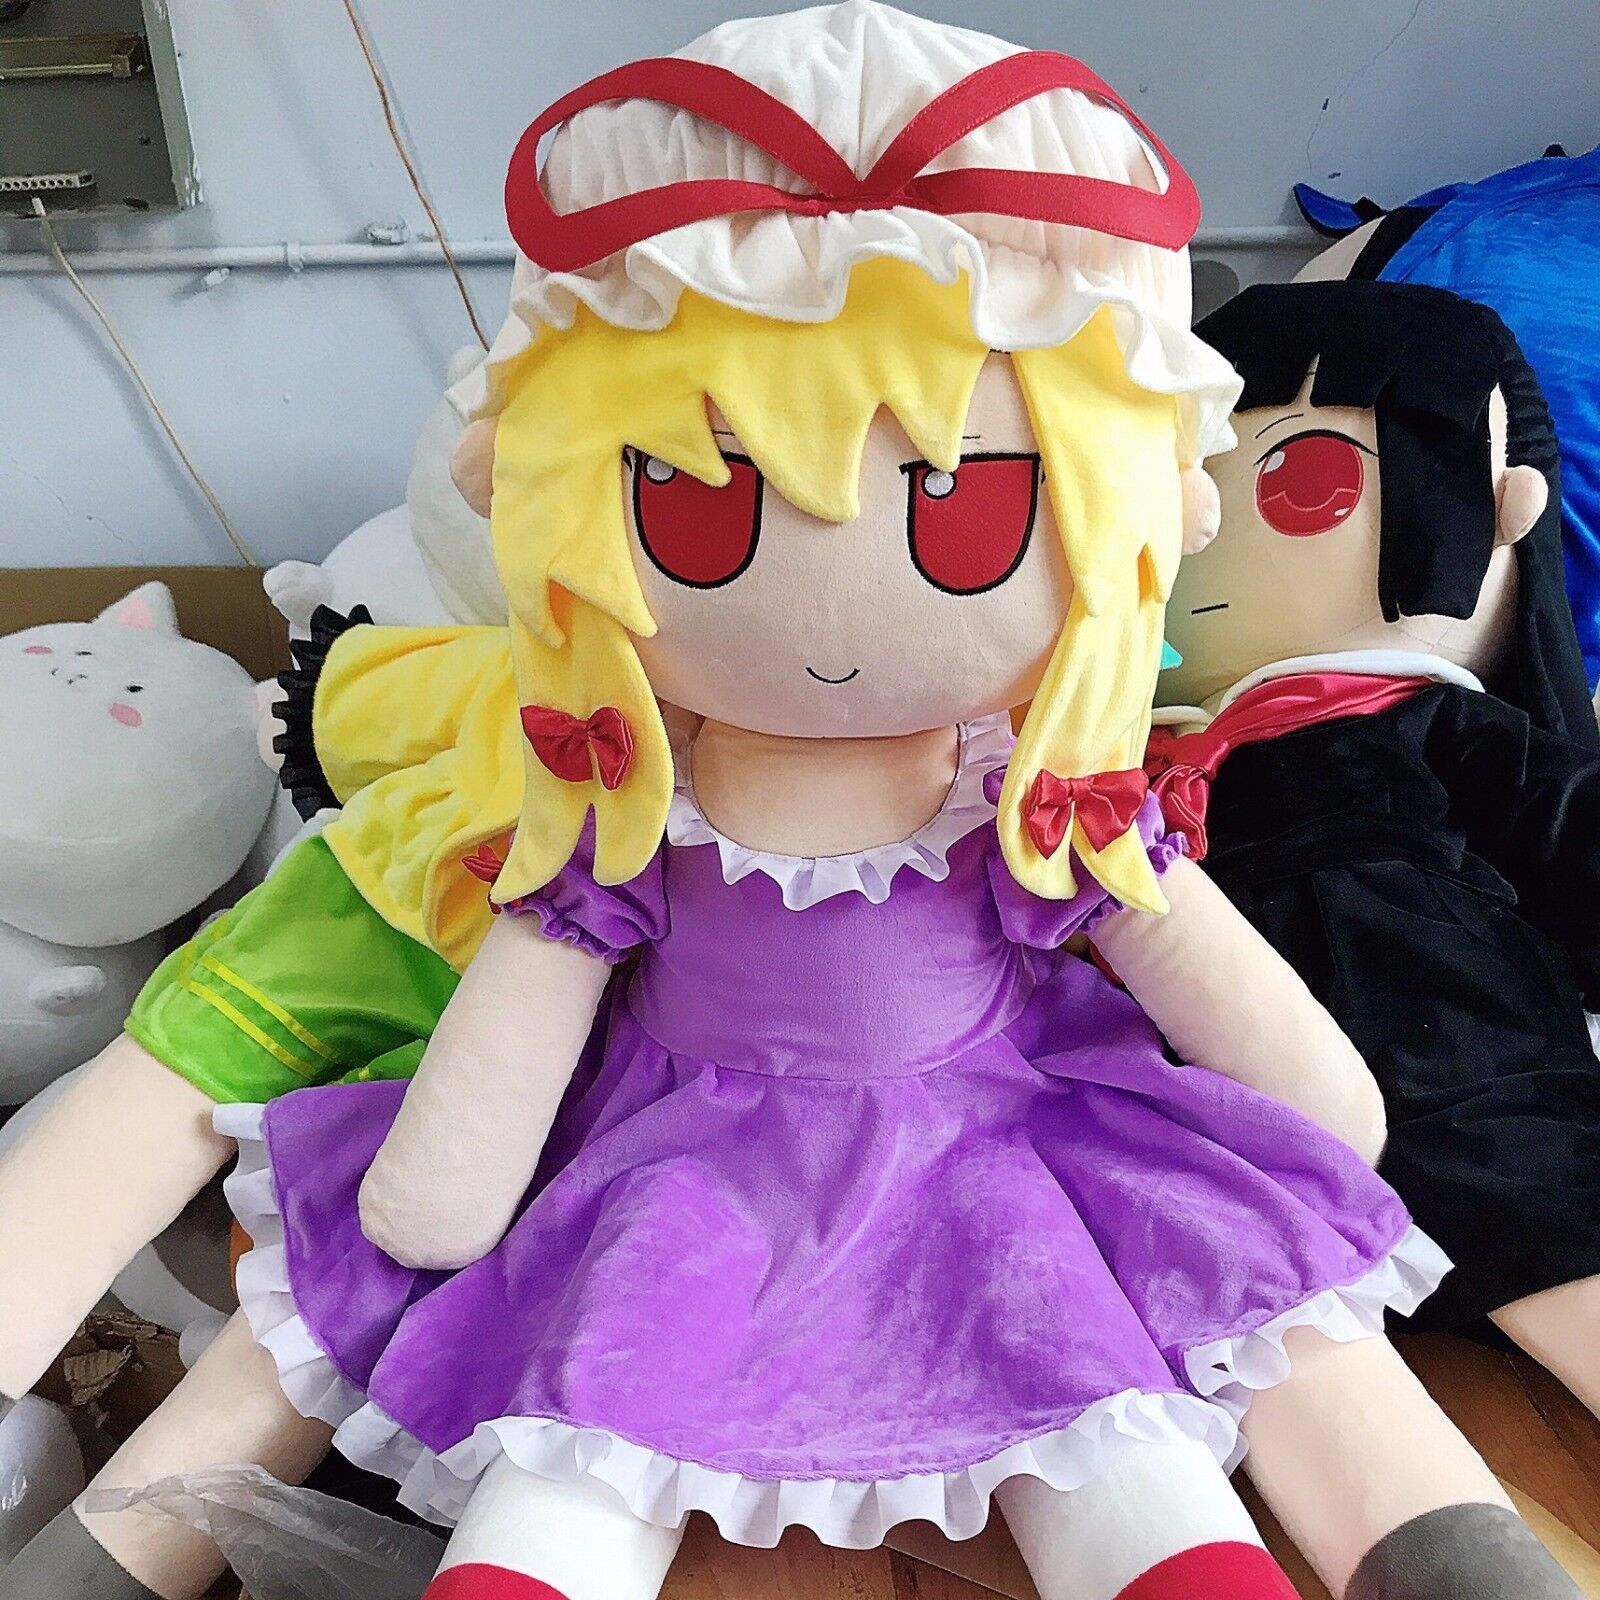 Large Touhou Project Yakumo Yukari Stuffed Doll Throw Pillow Plush Toy 47 Inch